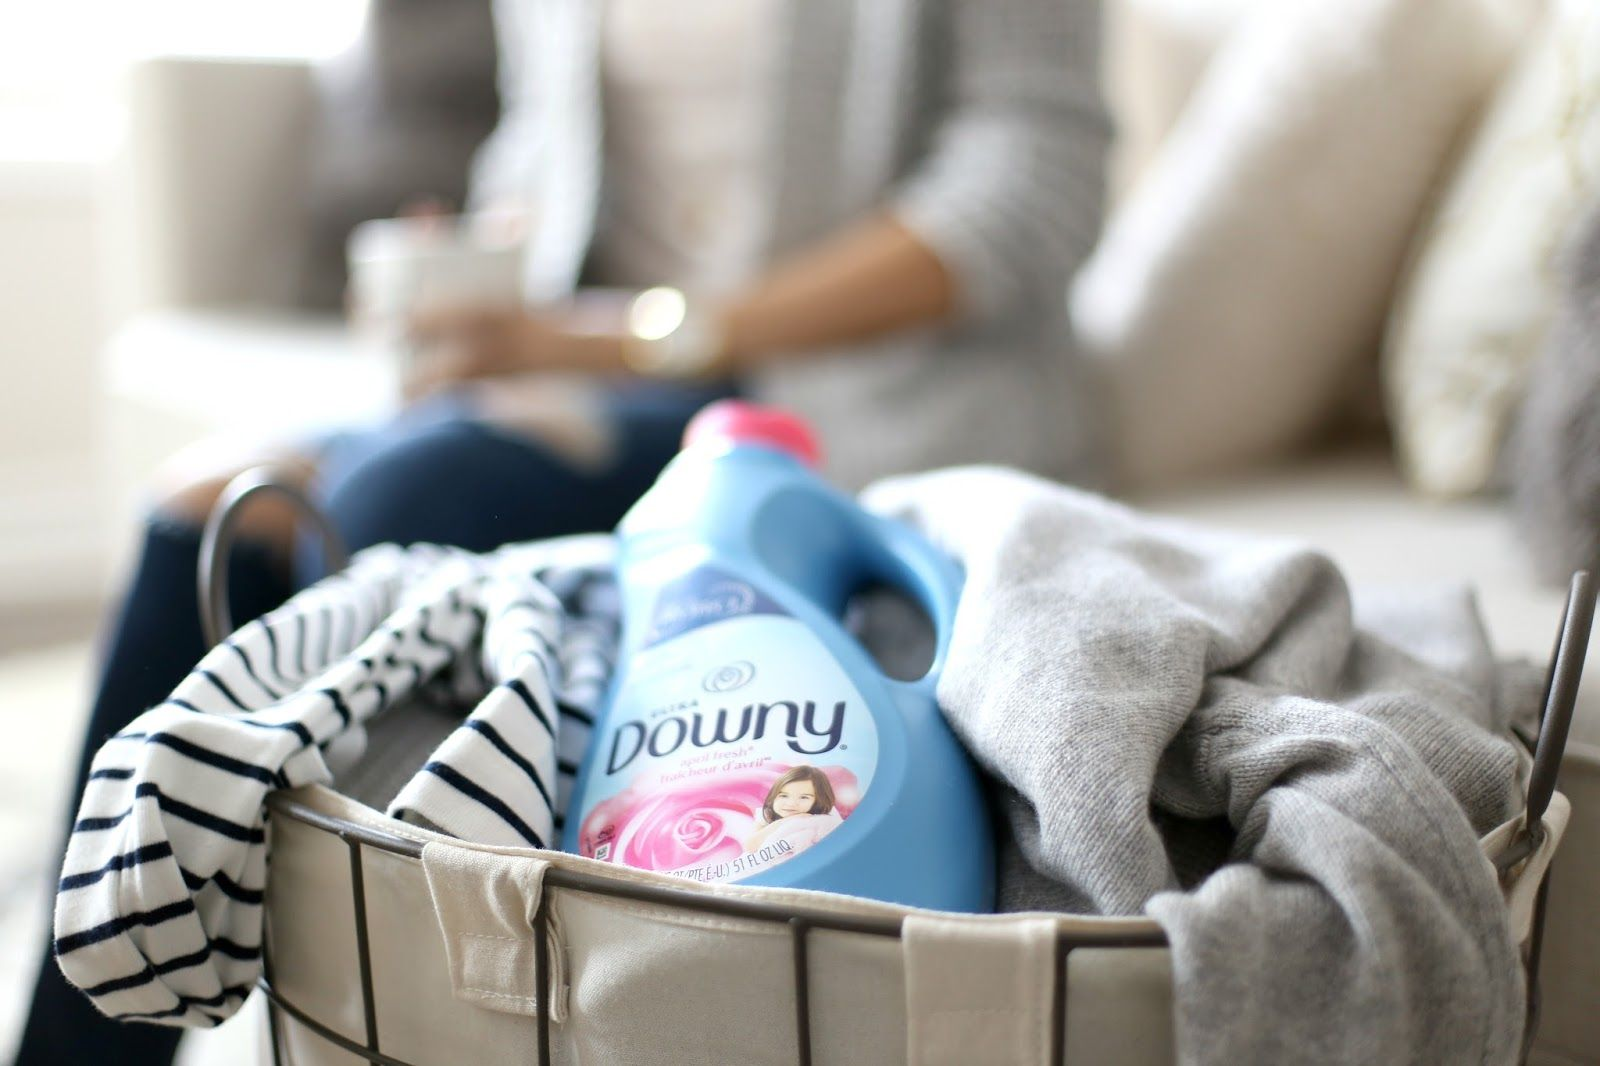 Fabric Conditioning with Downy